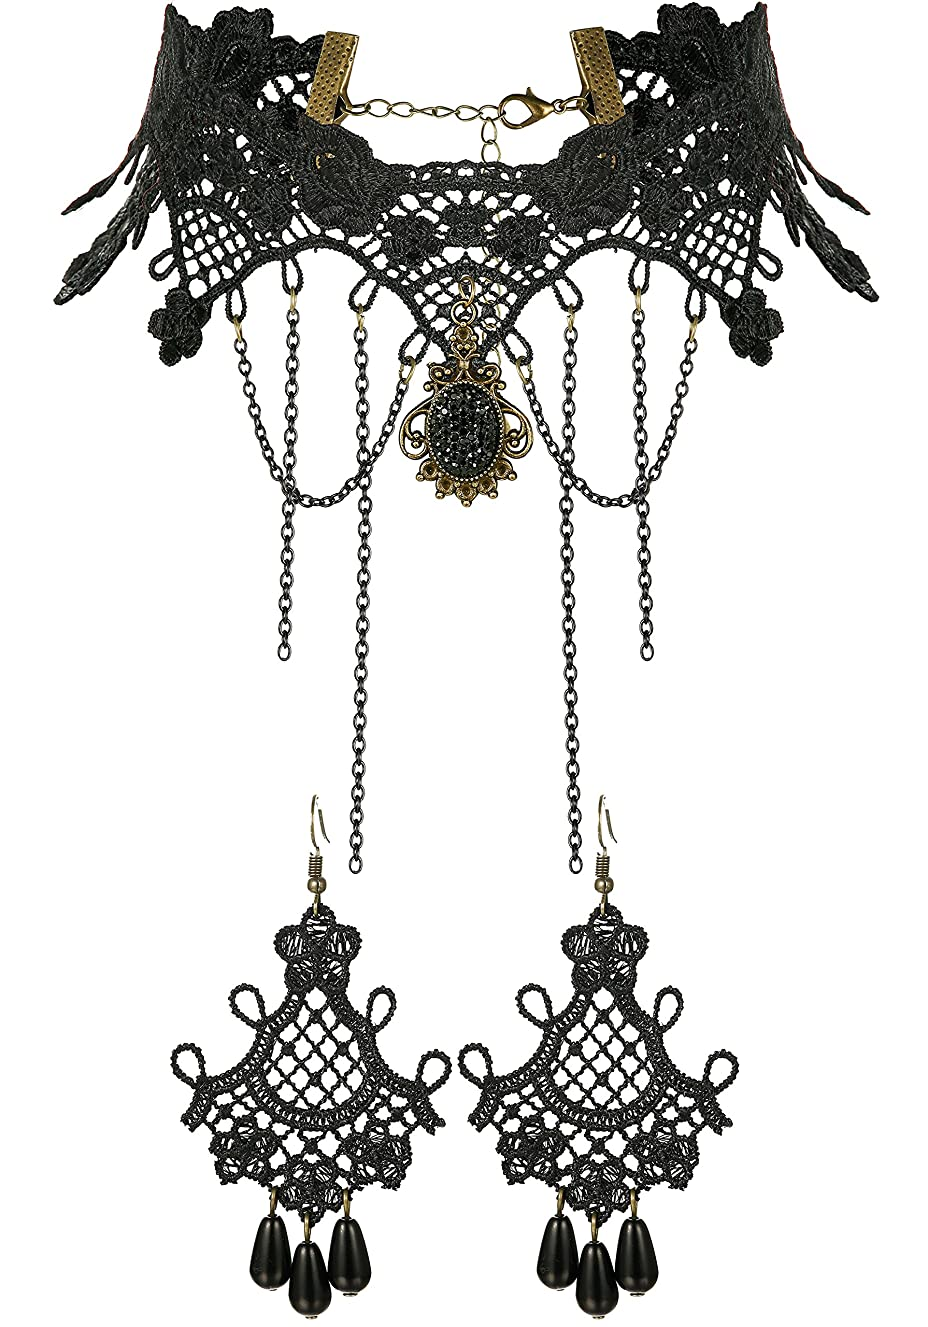 Thunaraz Chokers for Women Black Lace Gothic Vintage Choker Necklace and Earrings Set Lolita Style